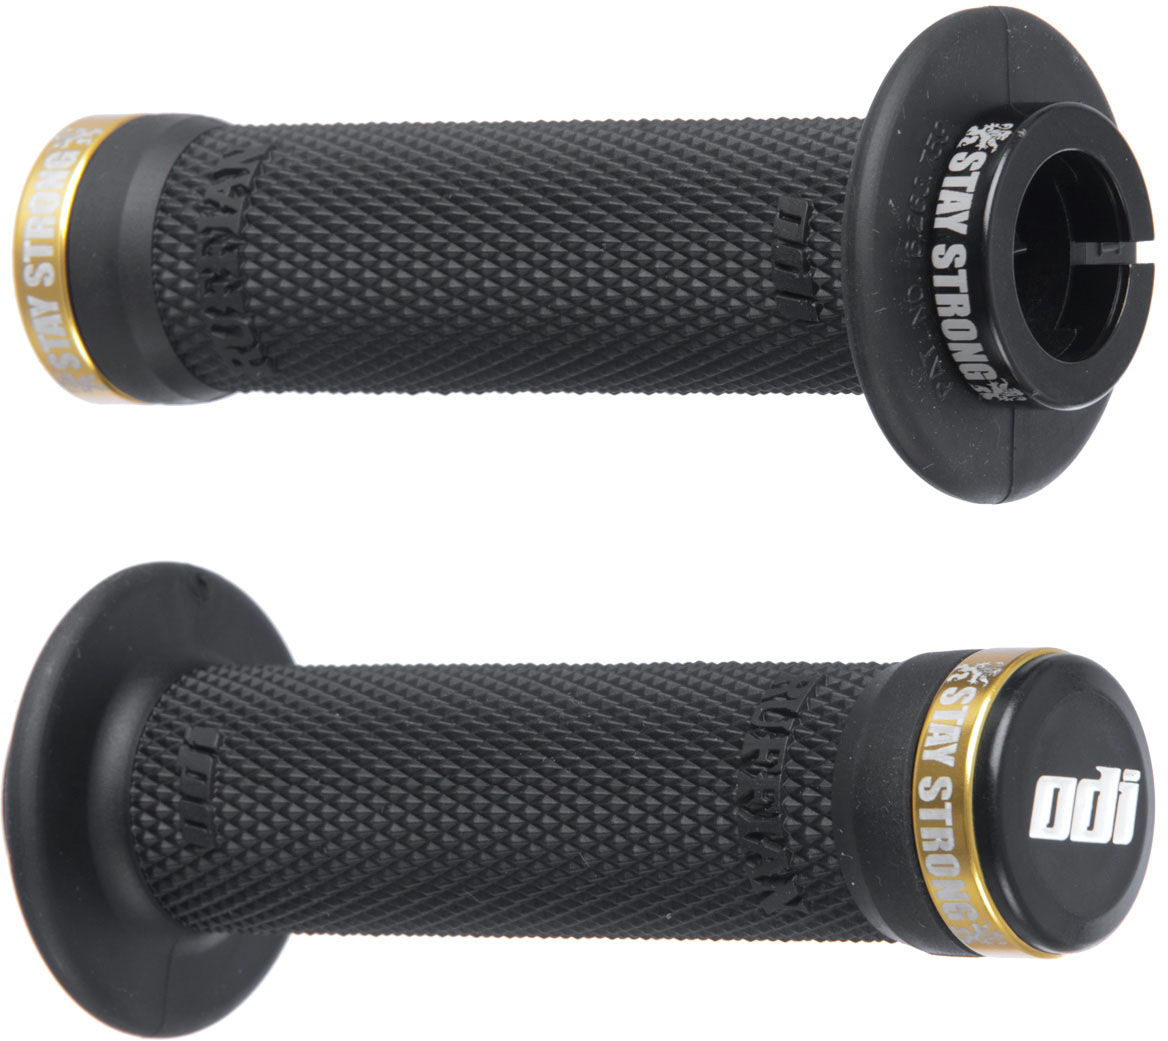 ODI Ruffian Stay Strong Lock-On Grips | Handles